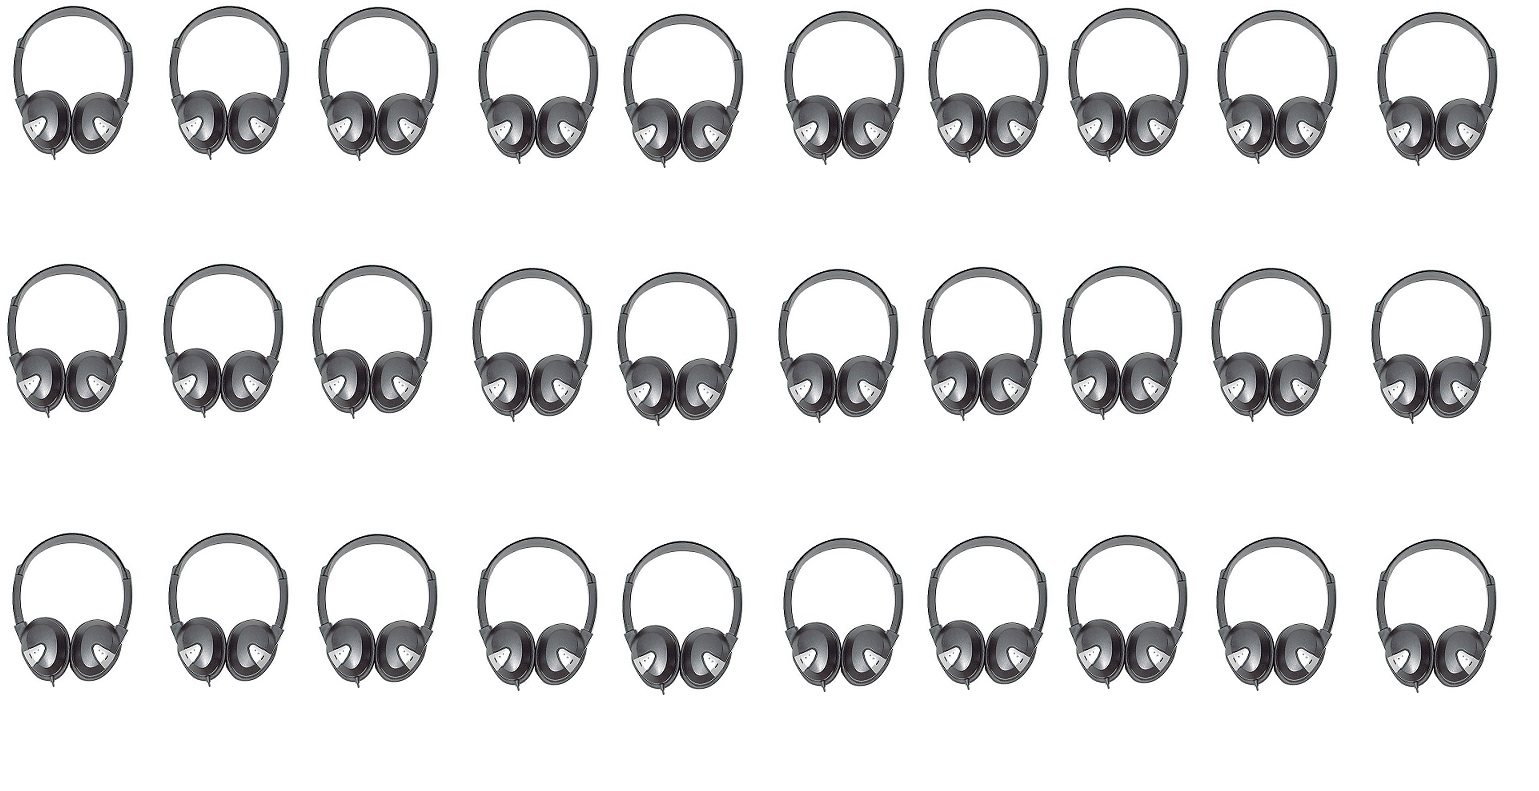 Avid Education 8EDU-30CPFV-060 Headphones Classroom Pack of 30 Black